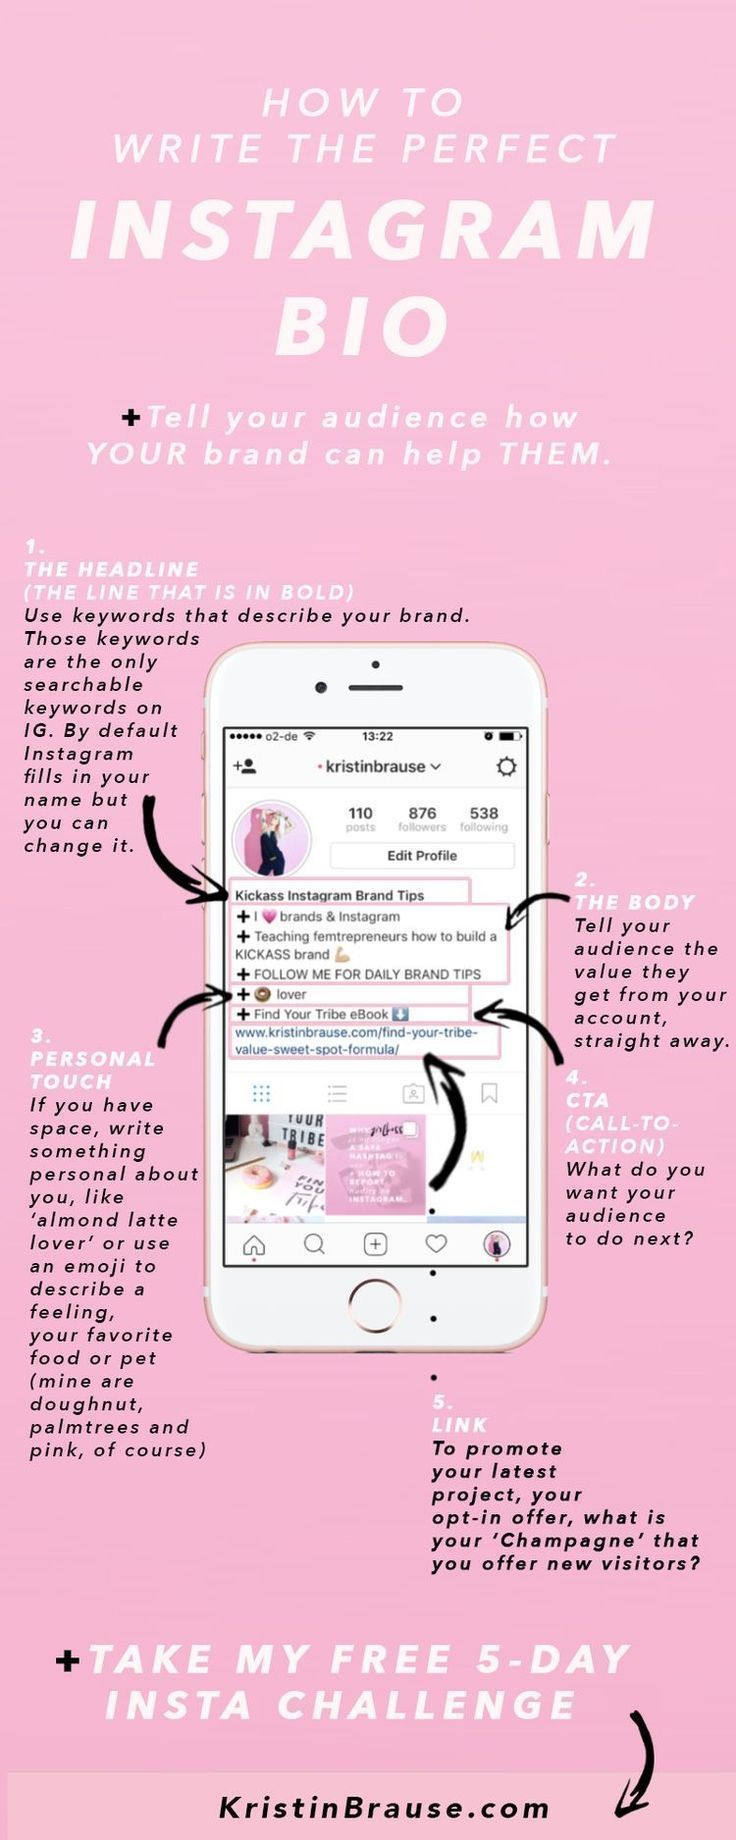 Instagram Marketing For Small Businesses Instagram Marketing Ideas Instagrammarketing Instagram Marketing Tips Instagram Marketing Instagram Bio